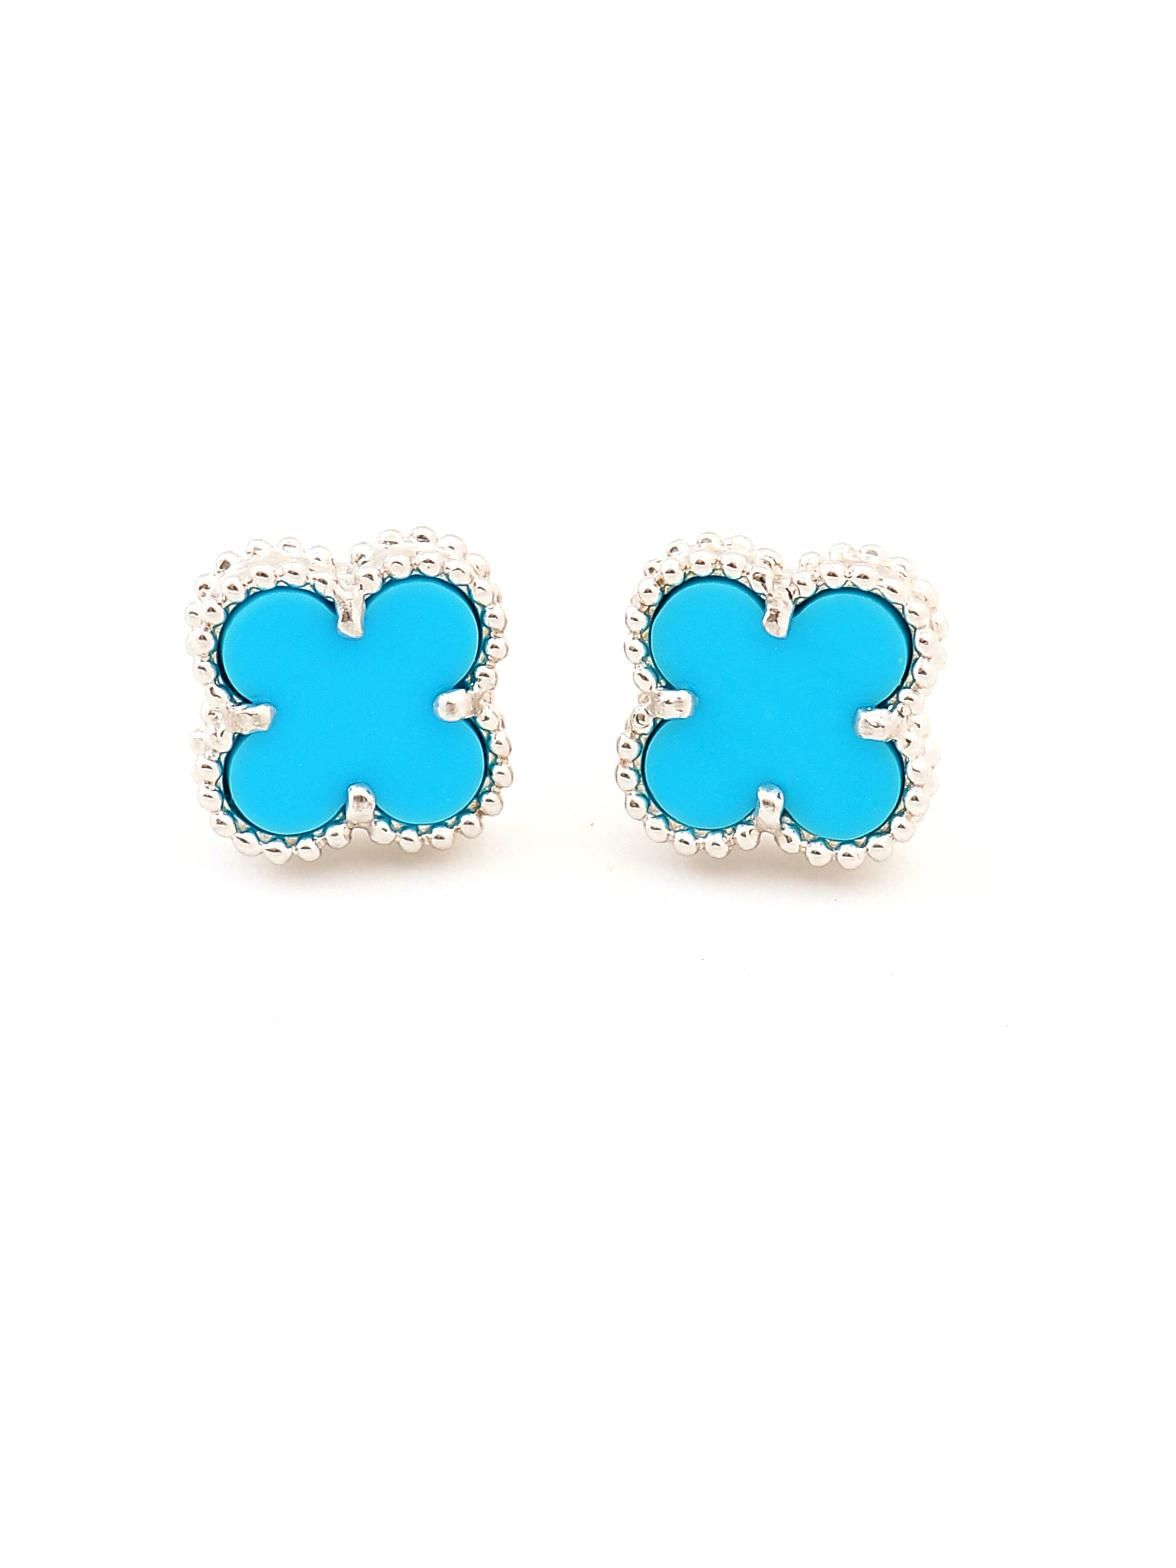 Jewelry Sets Frugal Fashion Jewelry Turquoise Colored Pierced Earrings Modern And Elegant In Fashion Jewelry & Watches